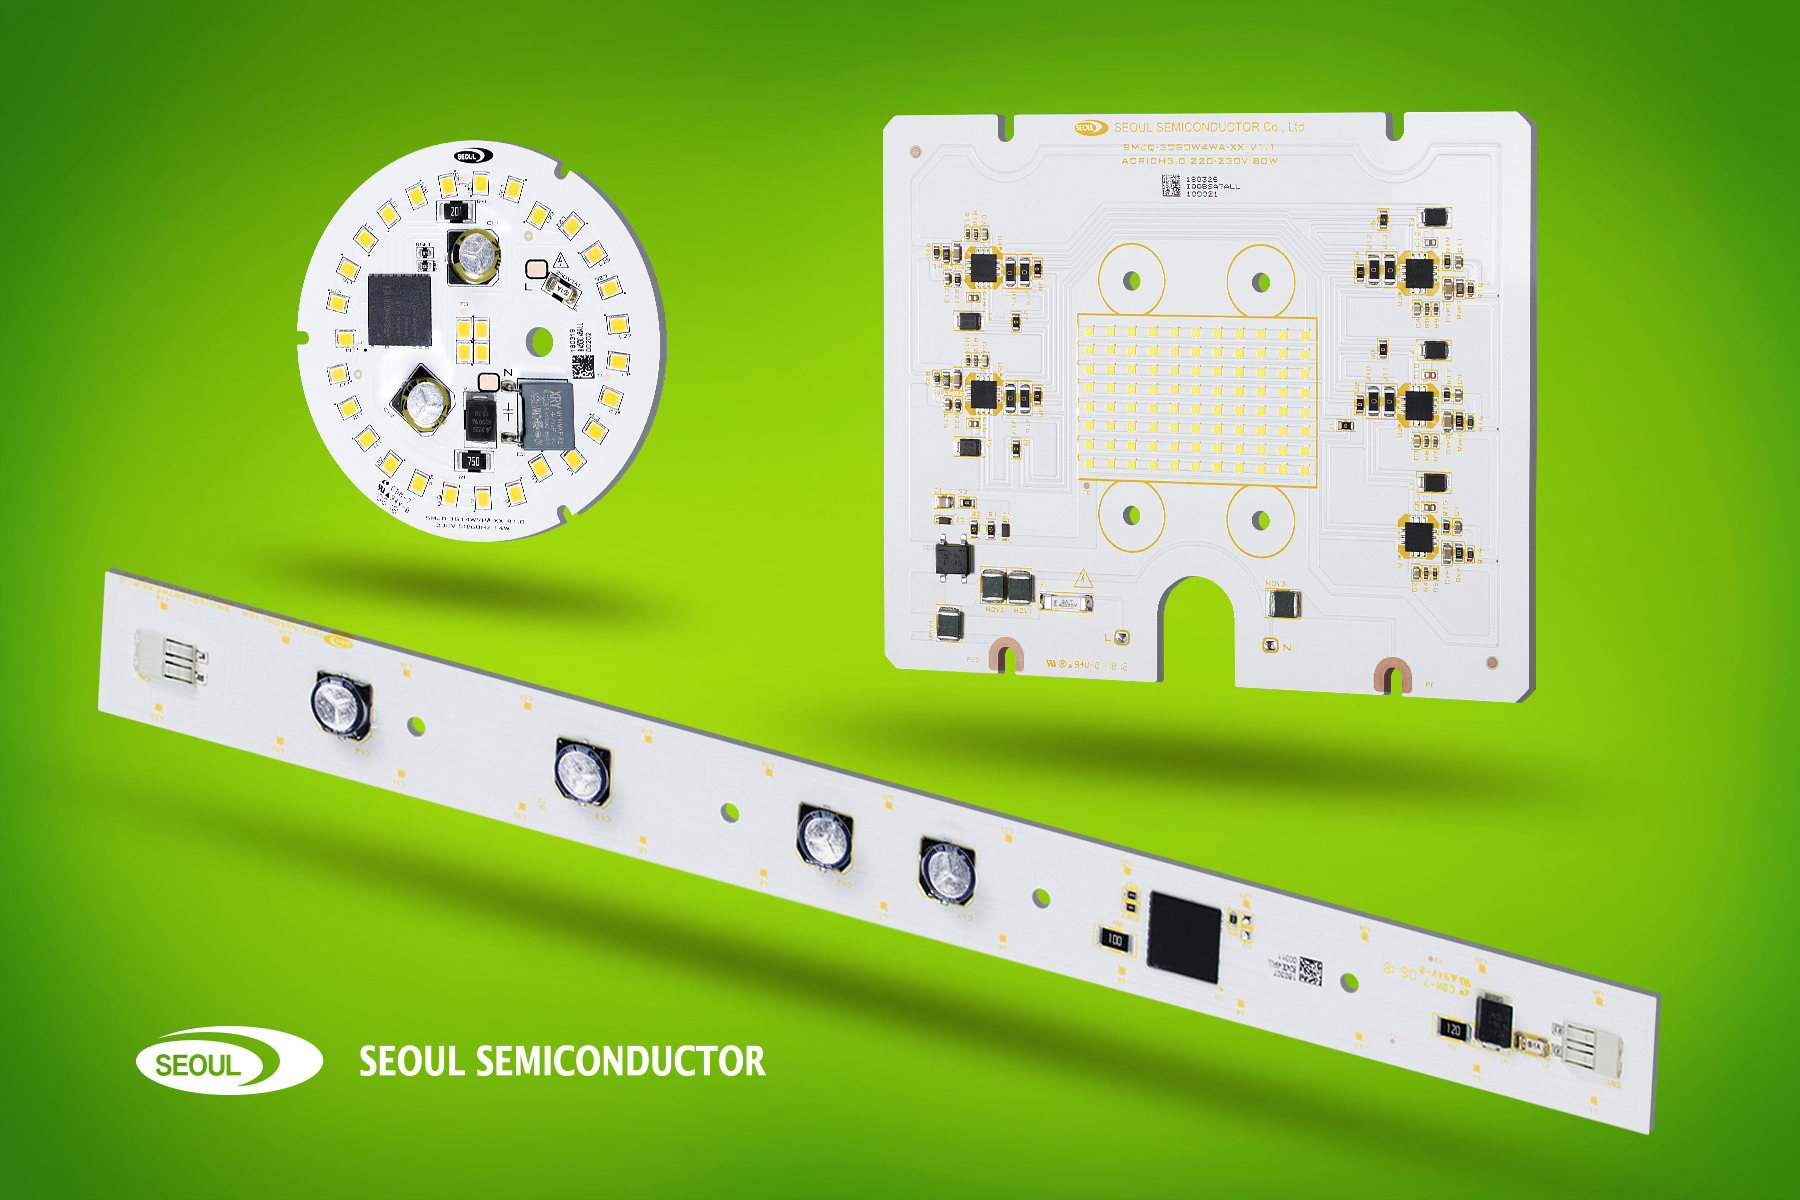 AC LED Modules Offered in Designs From 200 to 10,000 Lumens